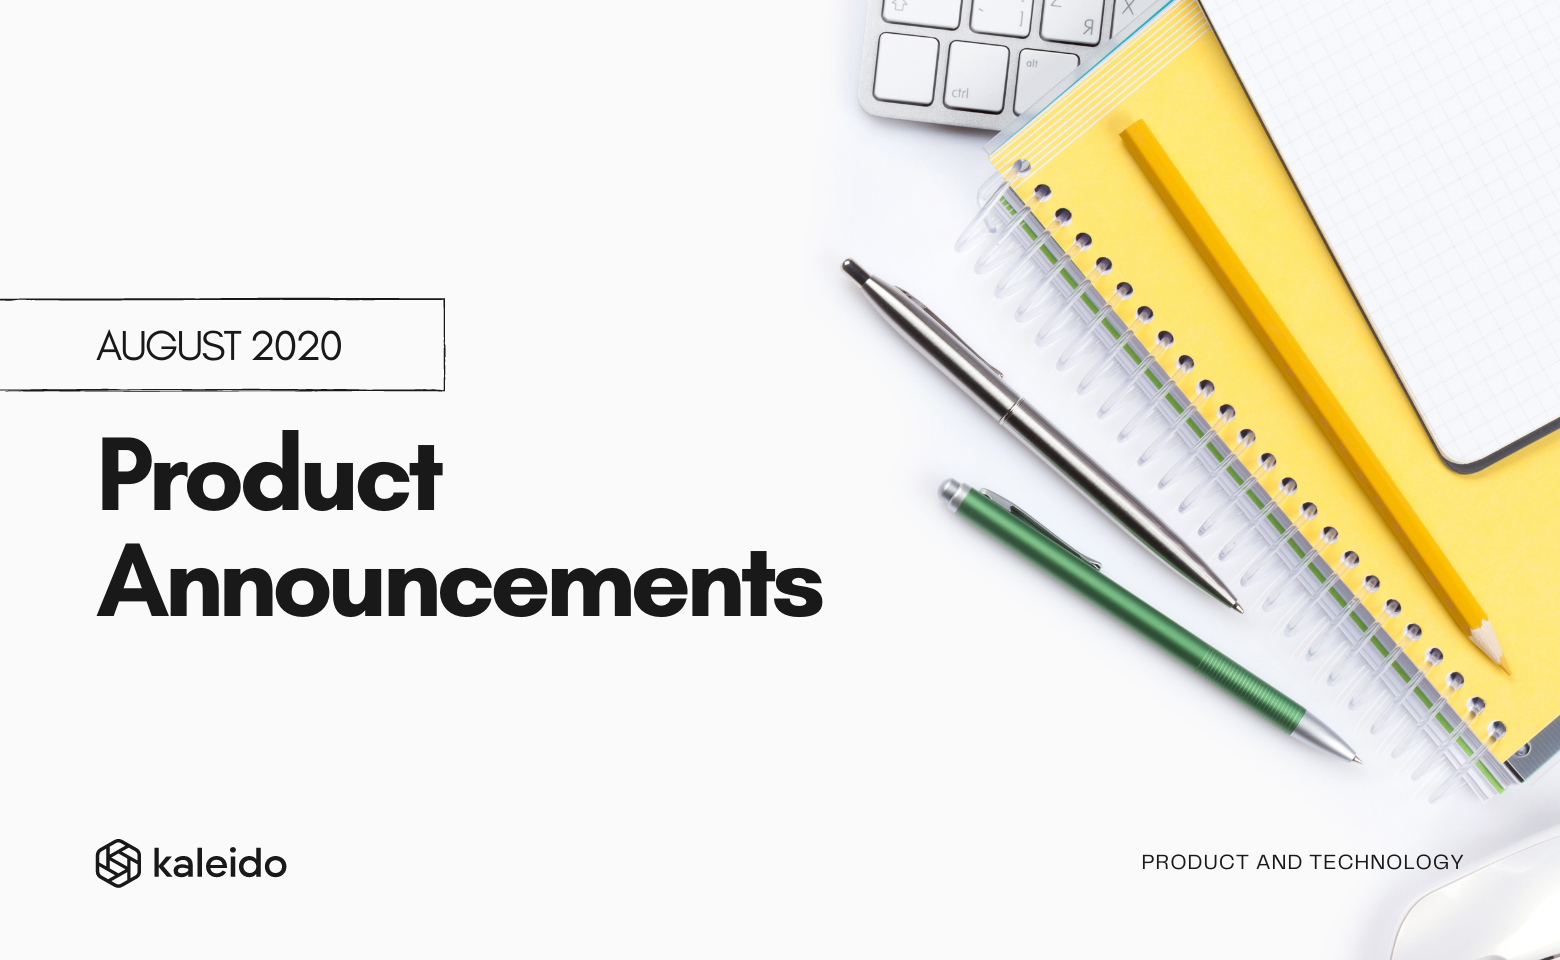 Kaleido Product Announcements August 2020